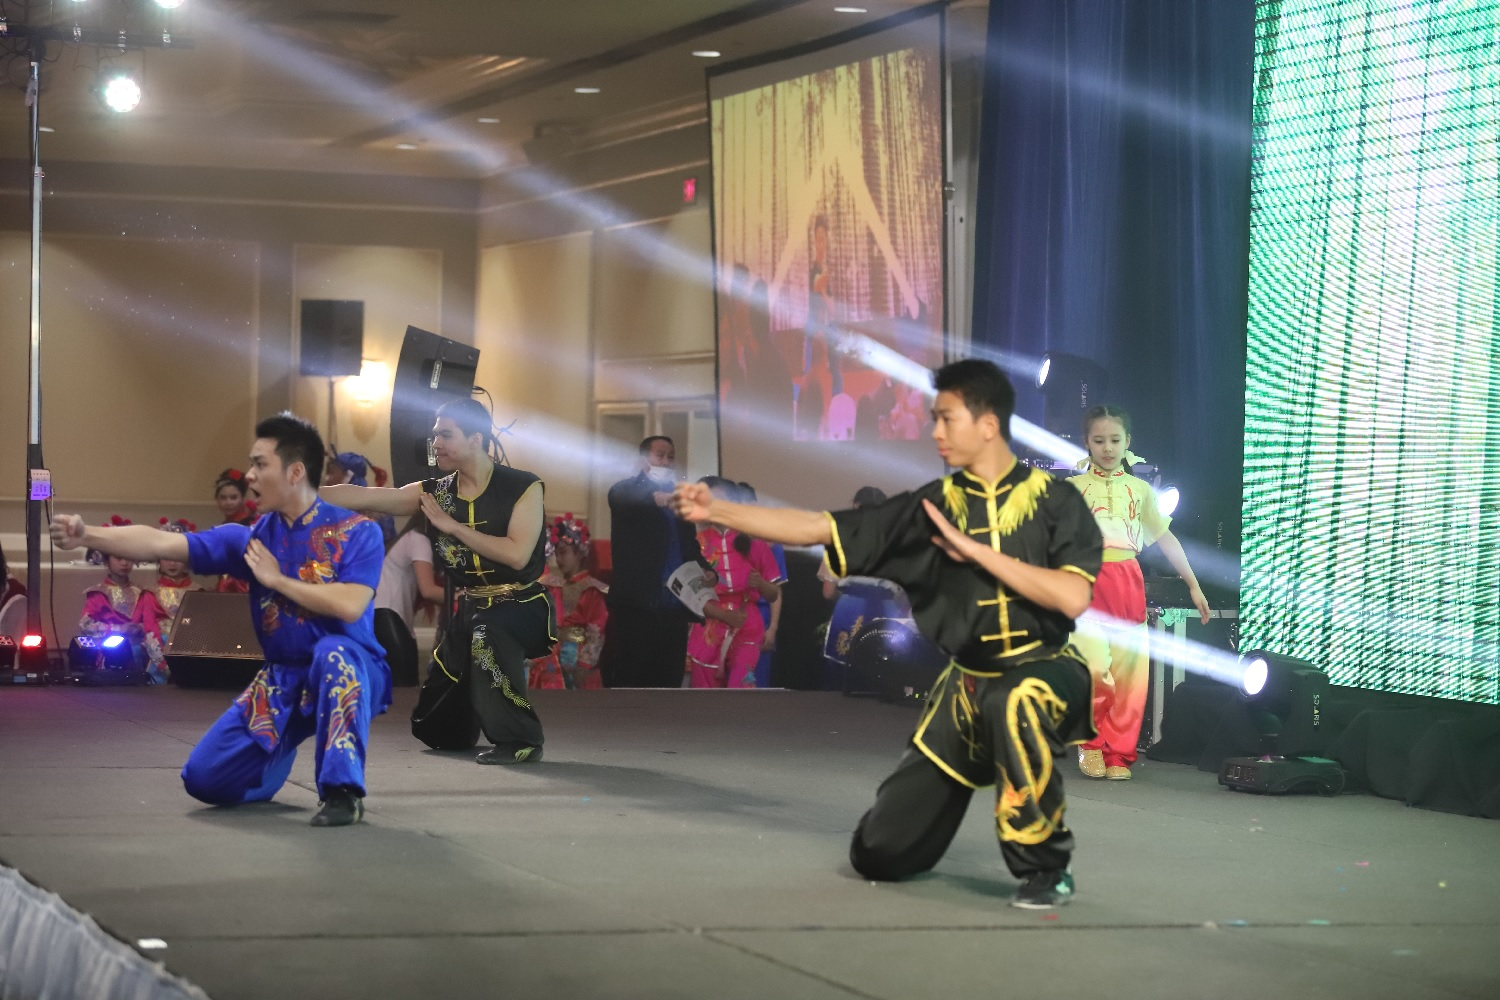 wayland-li-wushu-chinese-new-year-henan-association-canada-2019-13.jpg